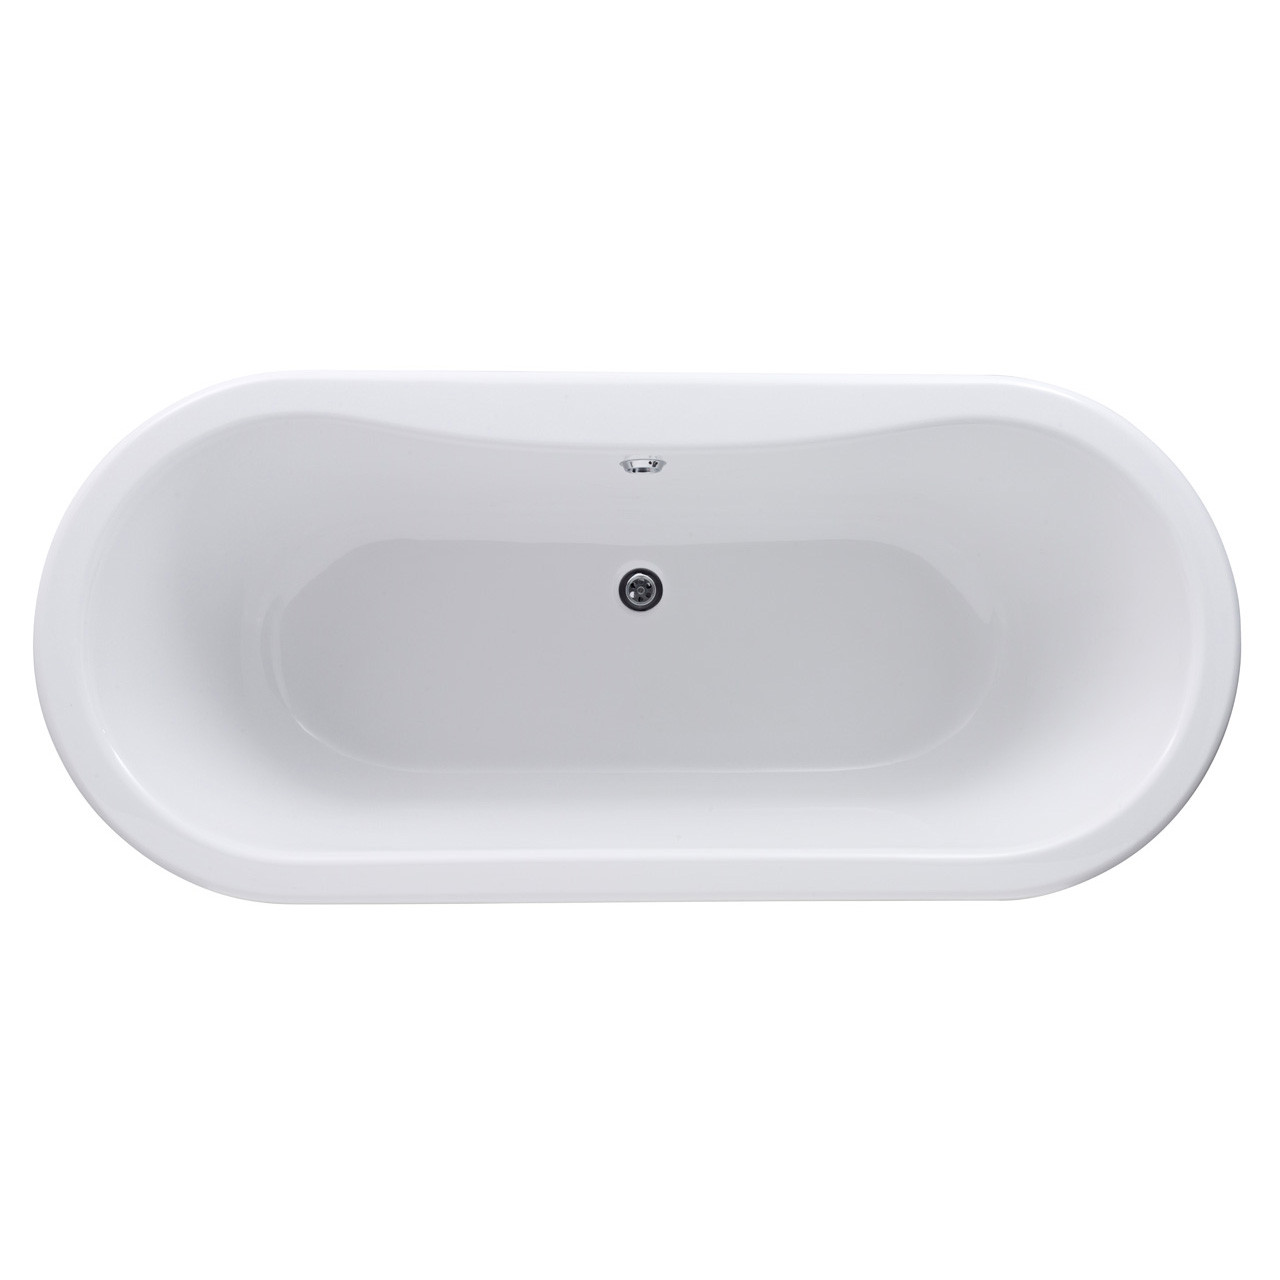 Nuie Kingsbury 1700mm Double Ended Freestanding Bath with Deacon Legs - RL1705M1